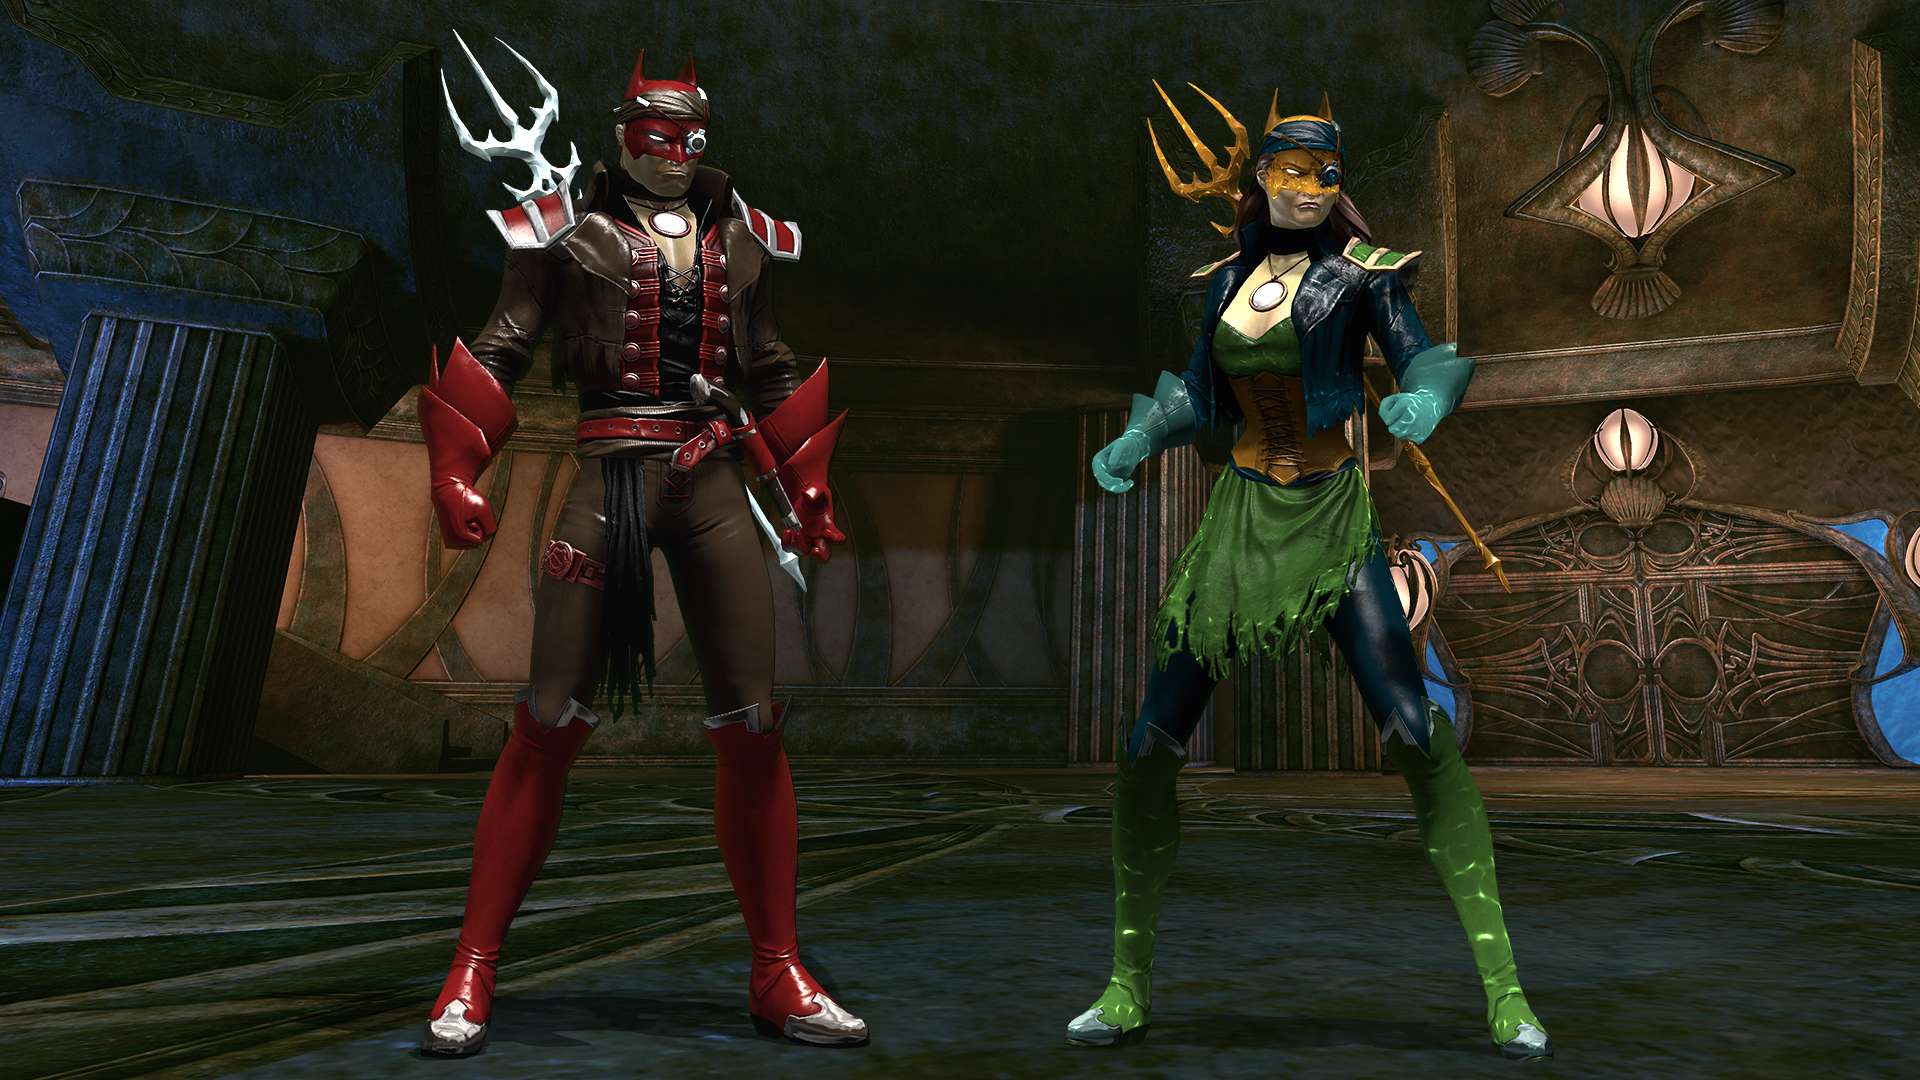 Dcuo Halloween 2020 Capsule Now Available: Cursed Gotham Time Capsule! | DC Universe Online